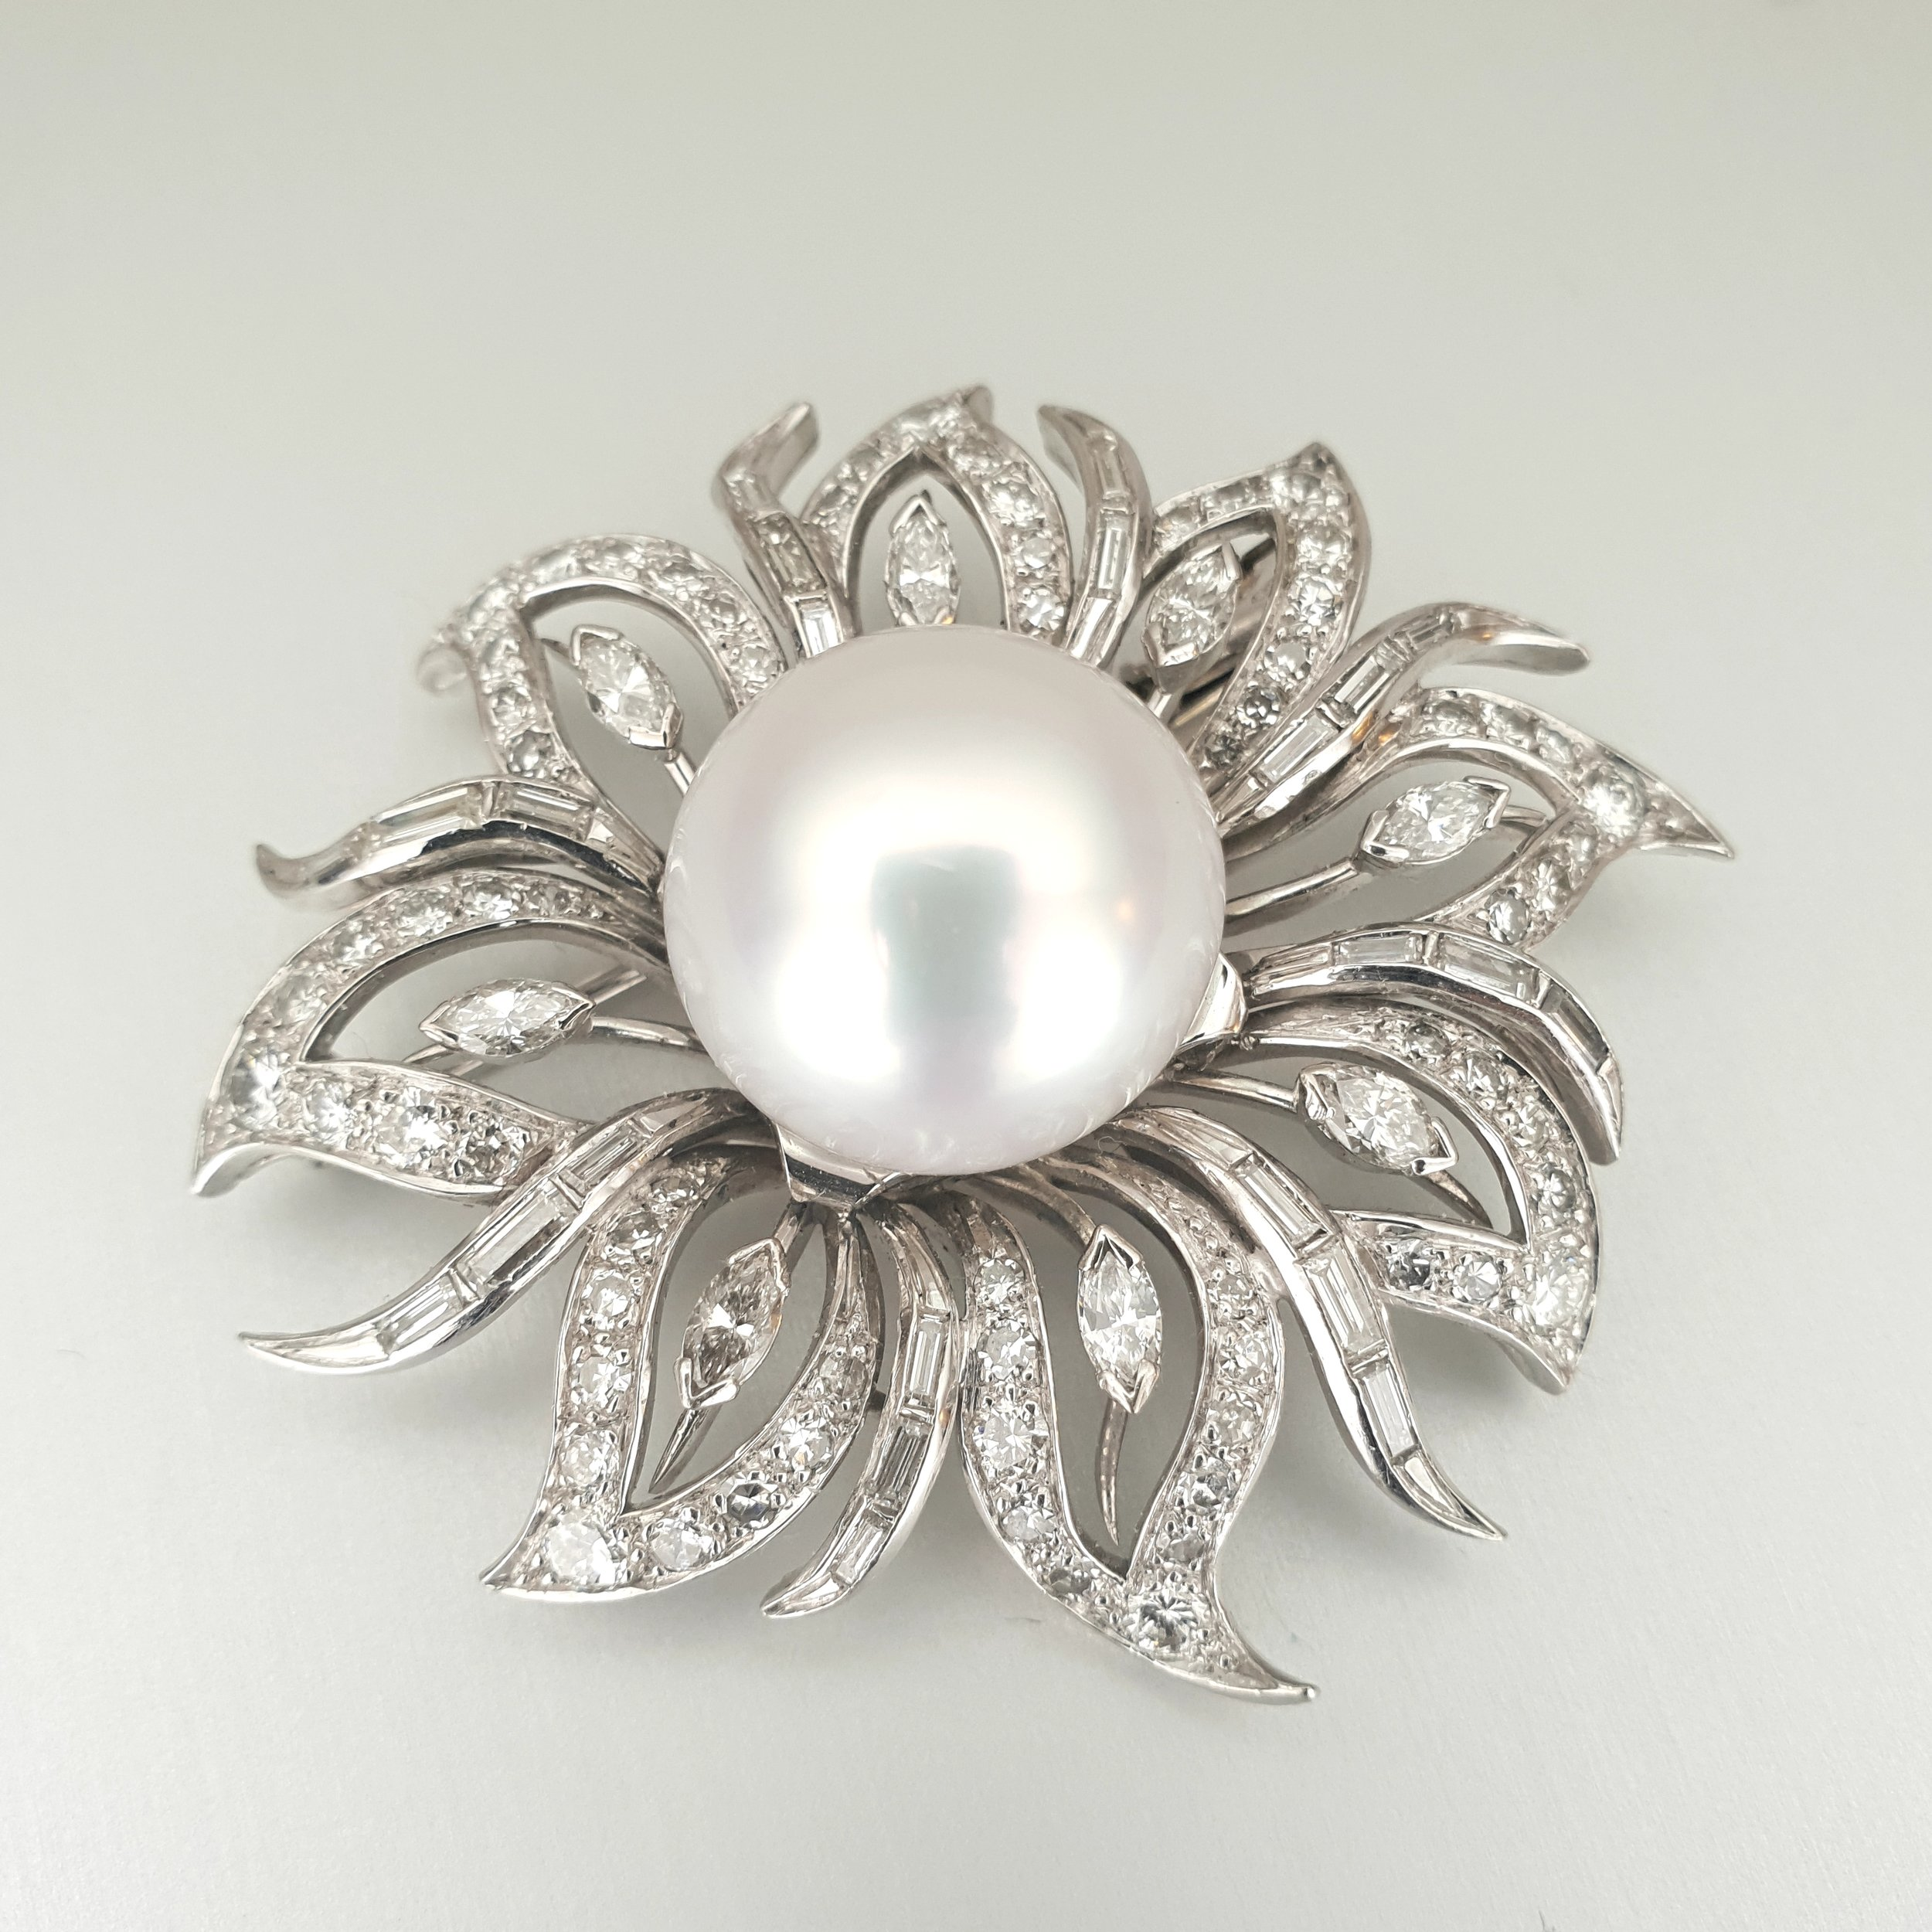 Antique pearl brooch.jpg